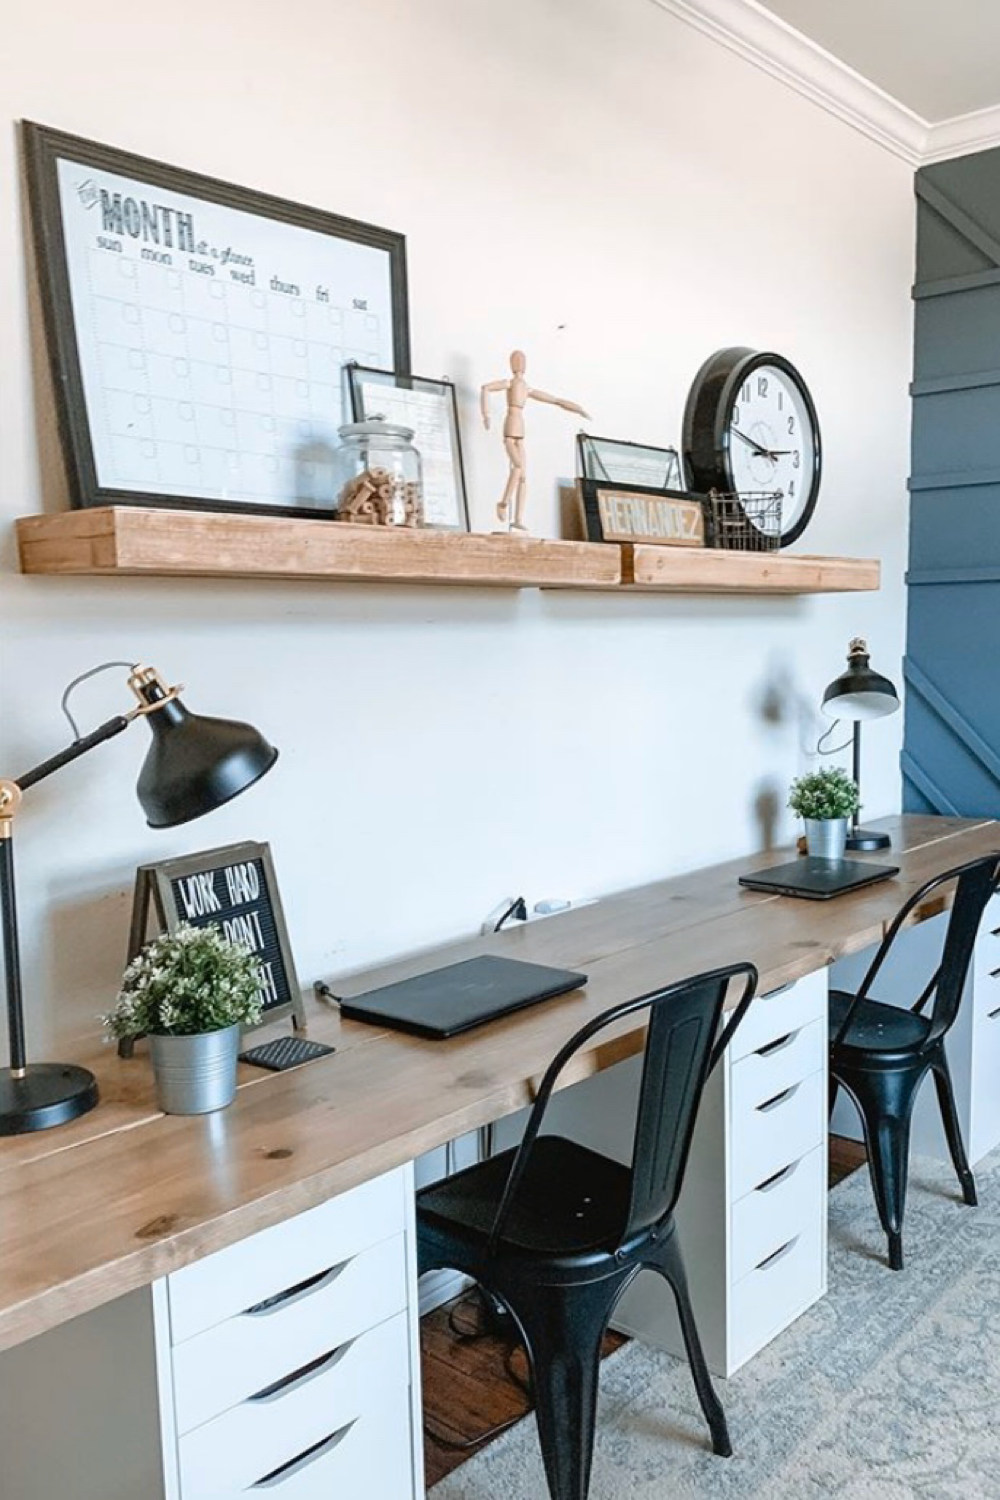 27 home office ideas that you will love including how to setup your office if you are working from home, the best desks and chairs. Plus home office decor, design and organization ideas. #homeoffice